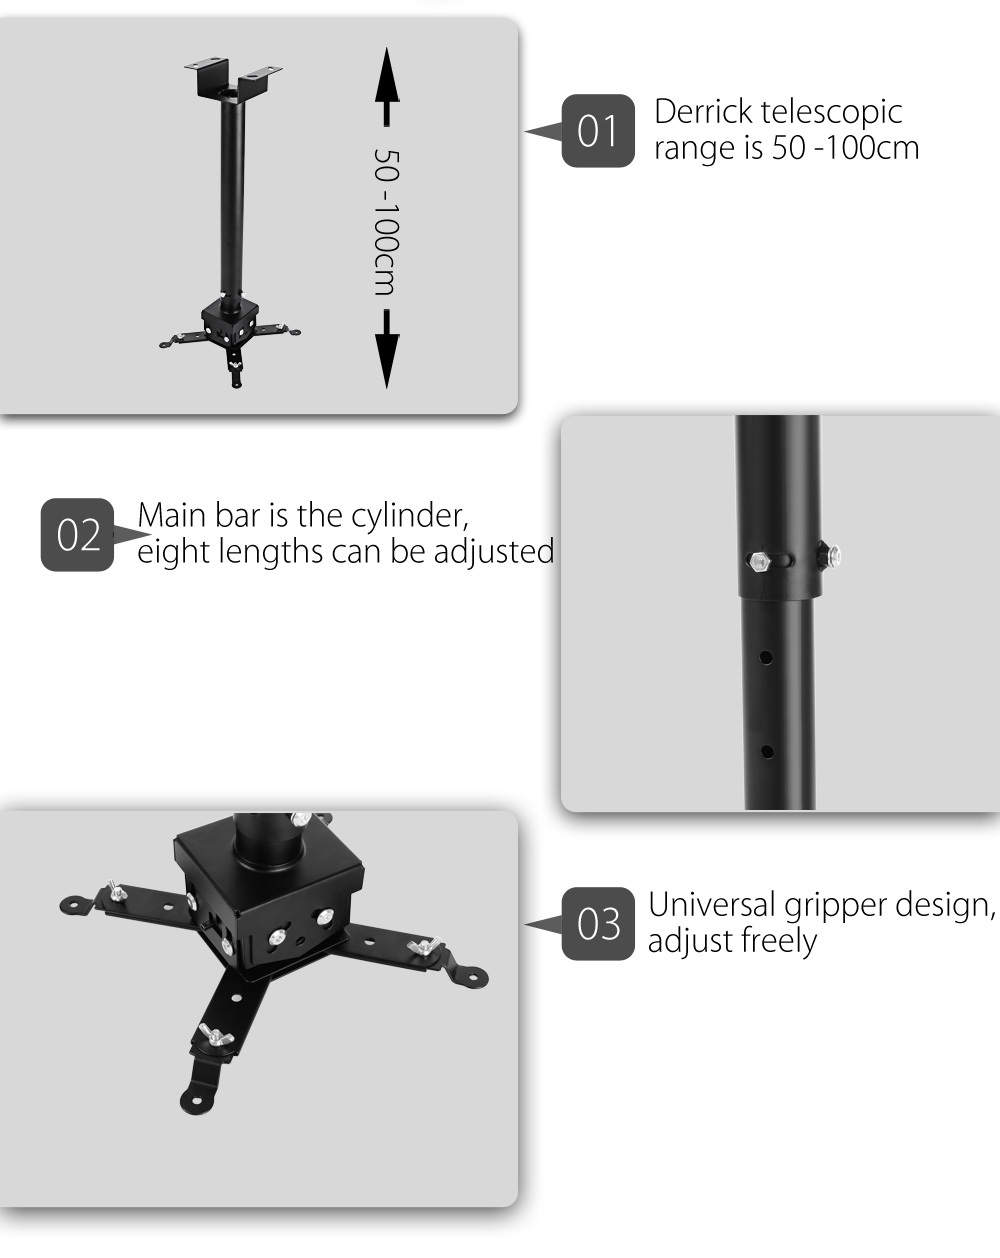 HY 1m Universal Adjustable Ceiling Projector Mount Extending Height Adjustable Projection